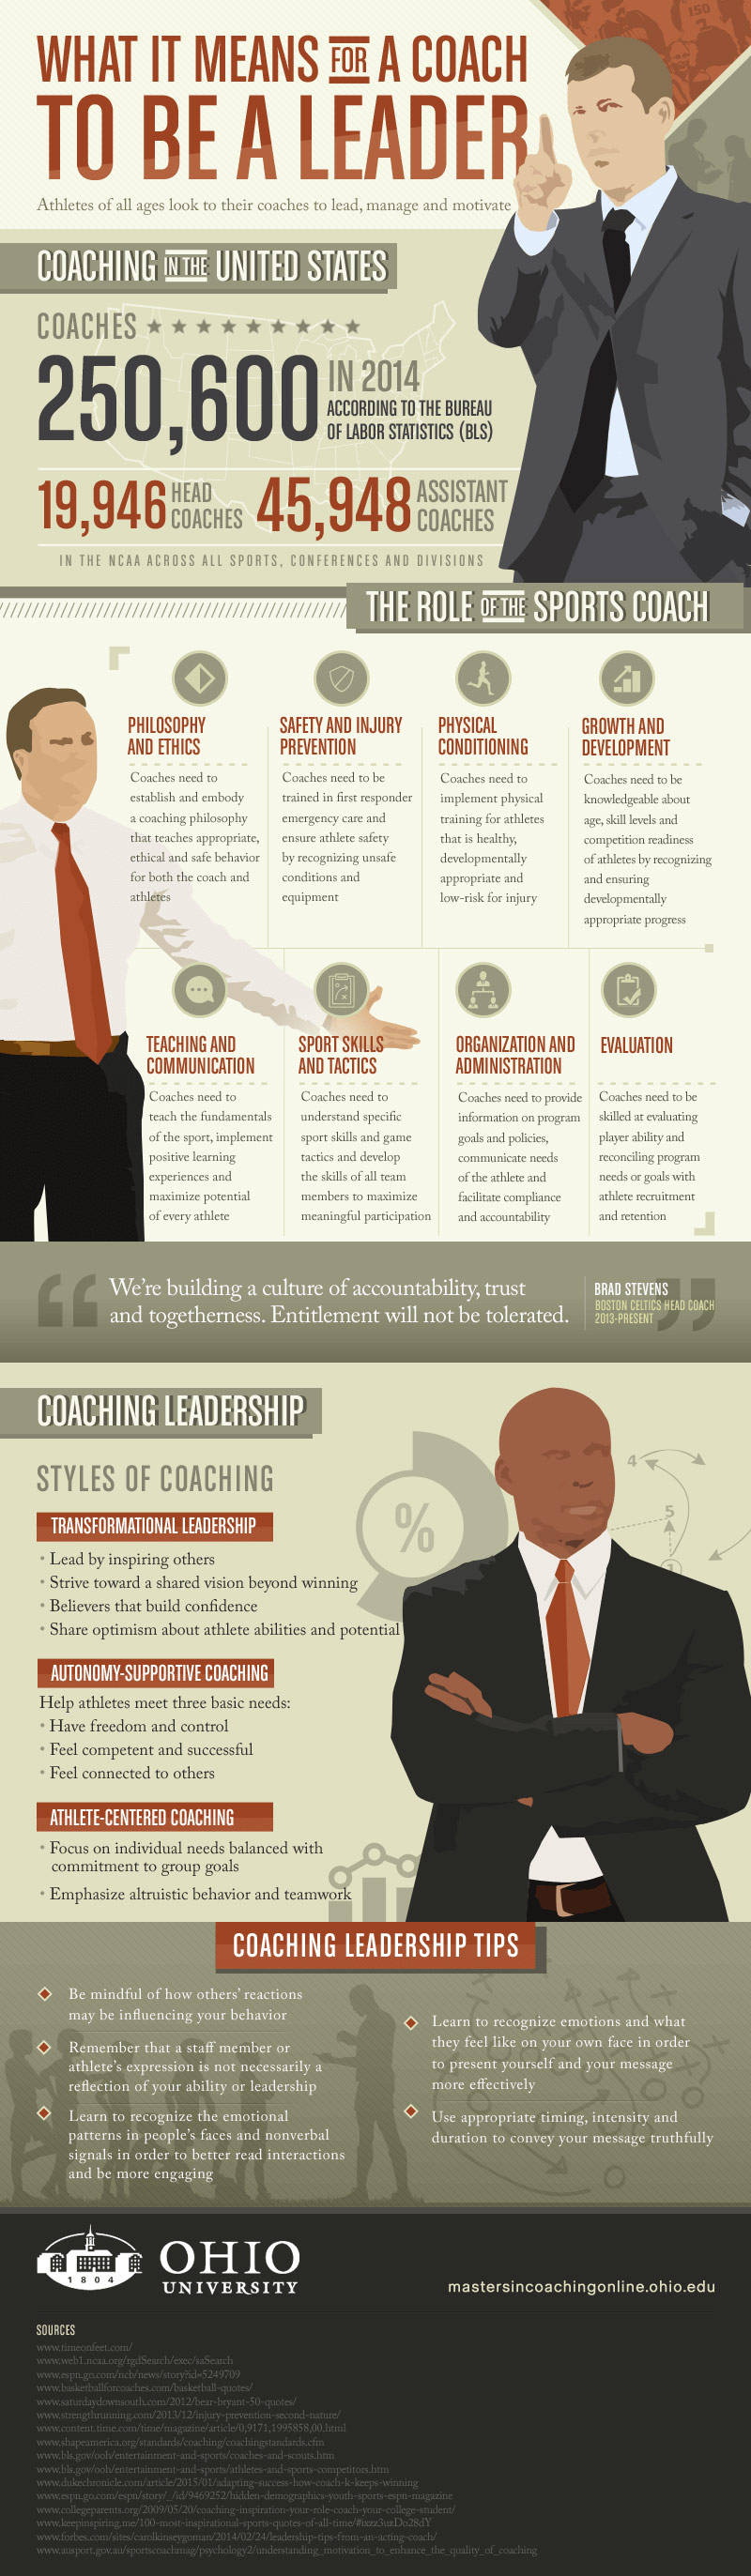 Coaches Are The Greatest Leaders - Infographic